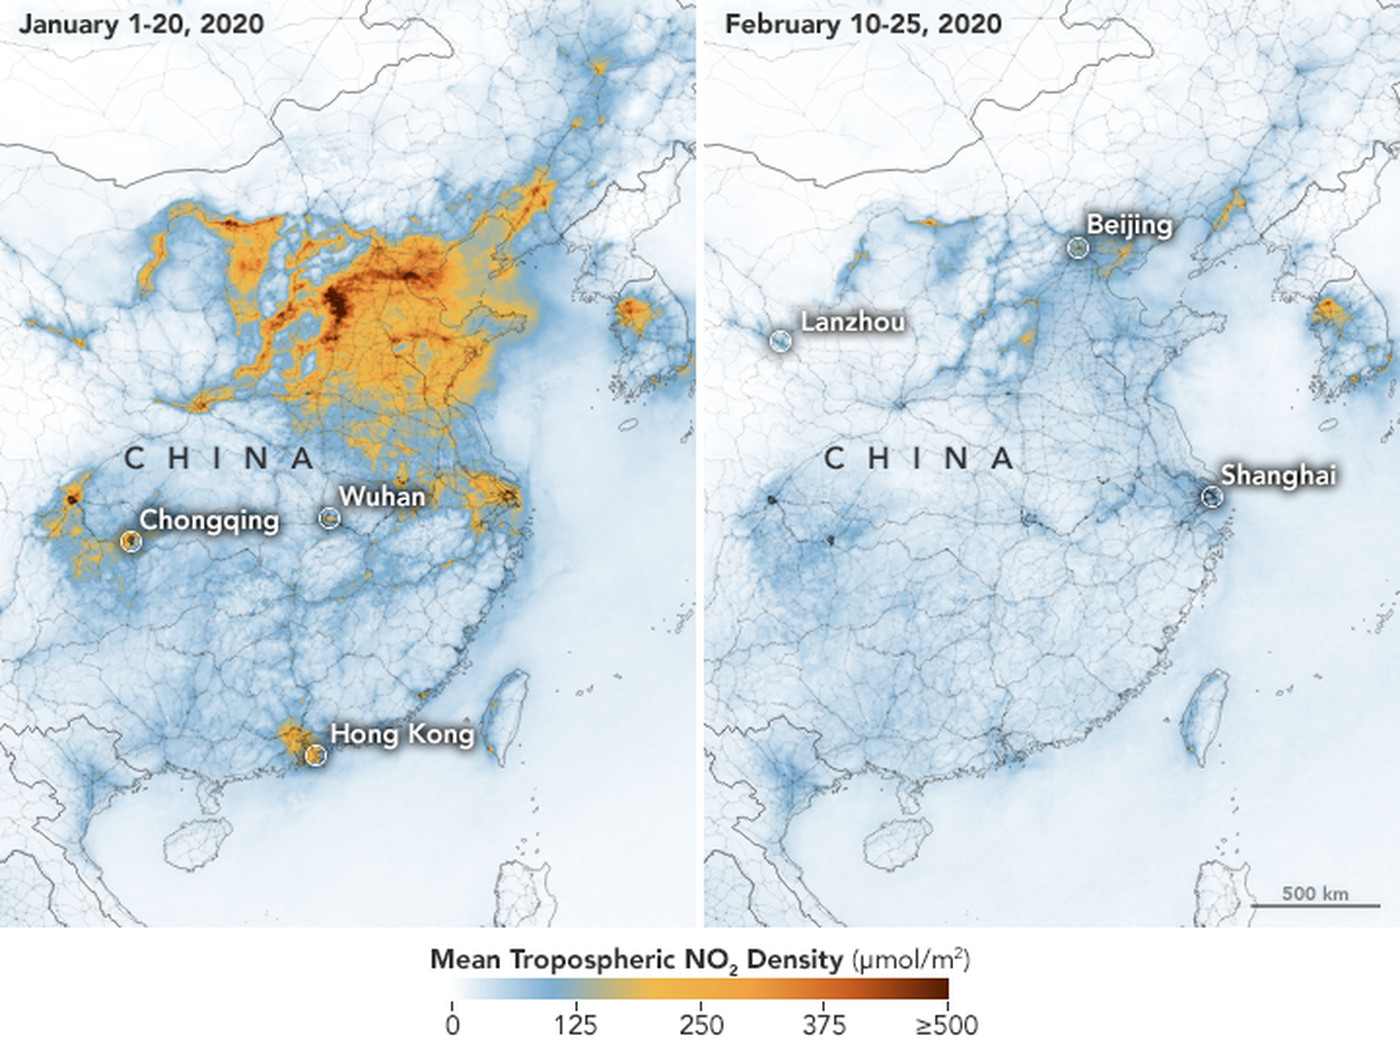 china air quality map Maps Show Drastic Drop In China S Air Pollution After Coronavirus china air quality map